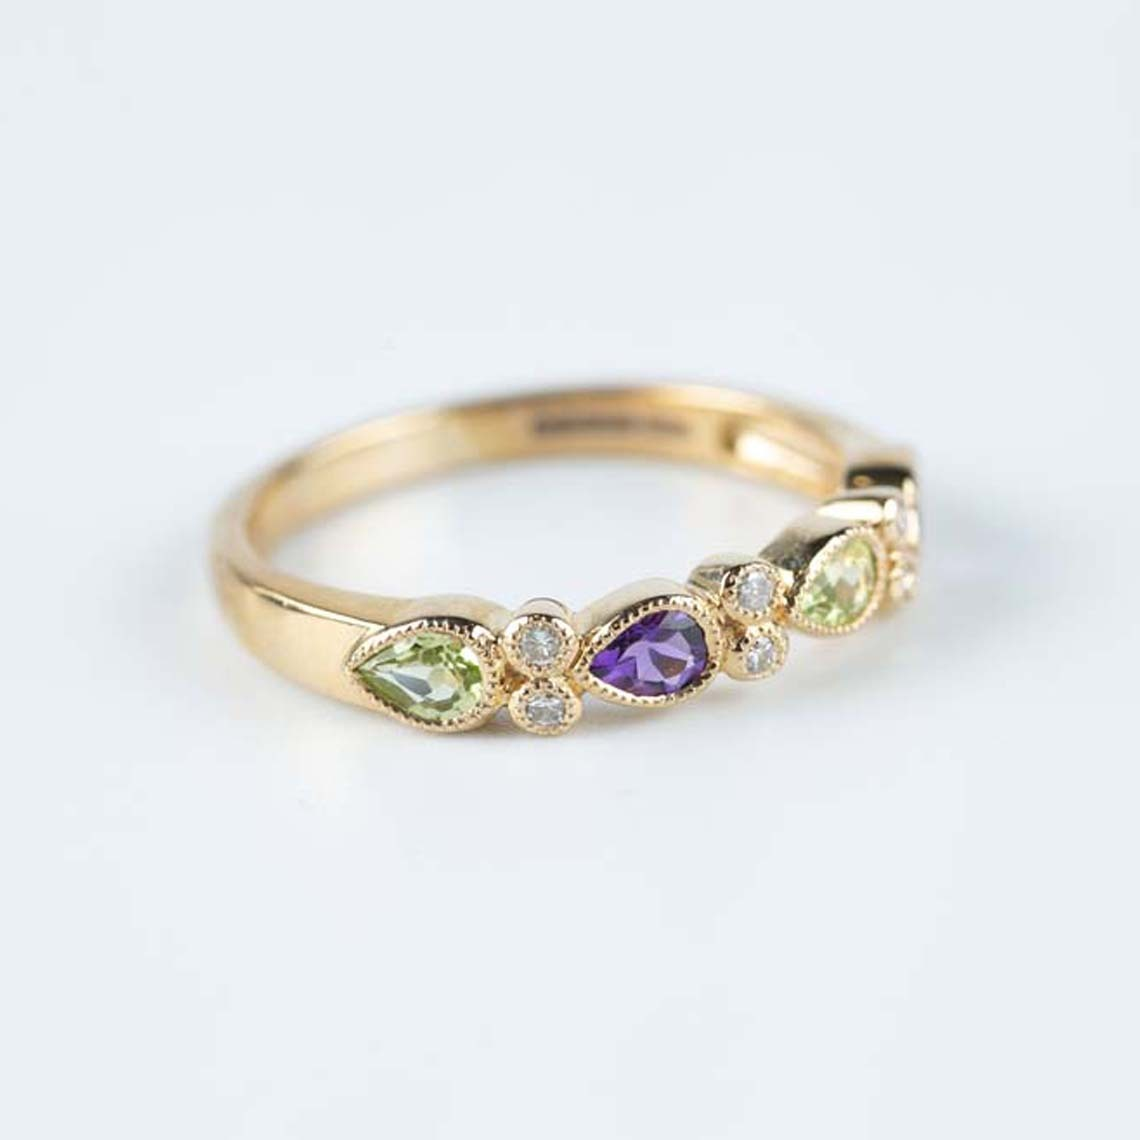 Amethyst, peridot and diamond ring